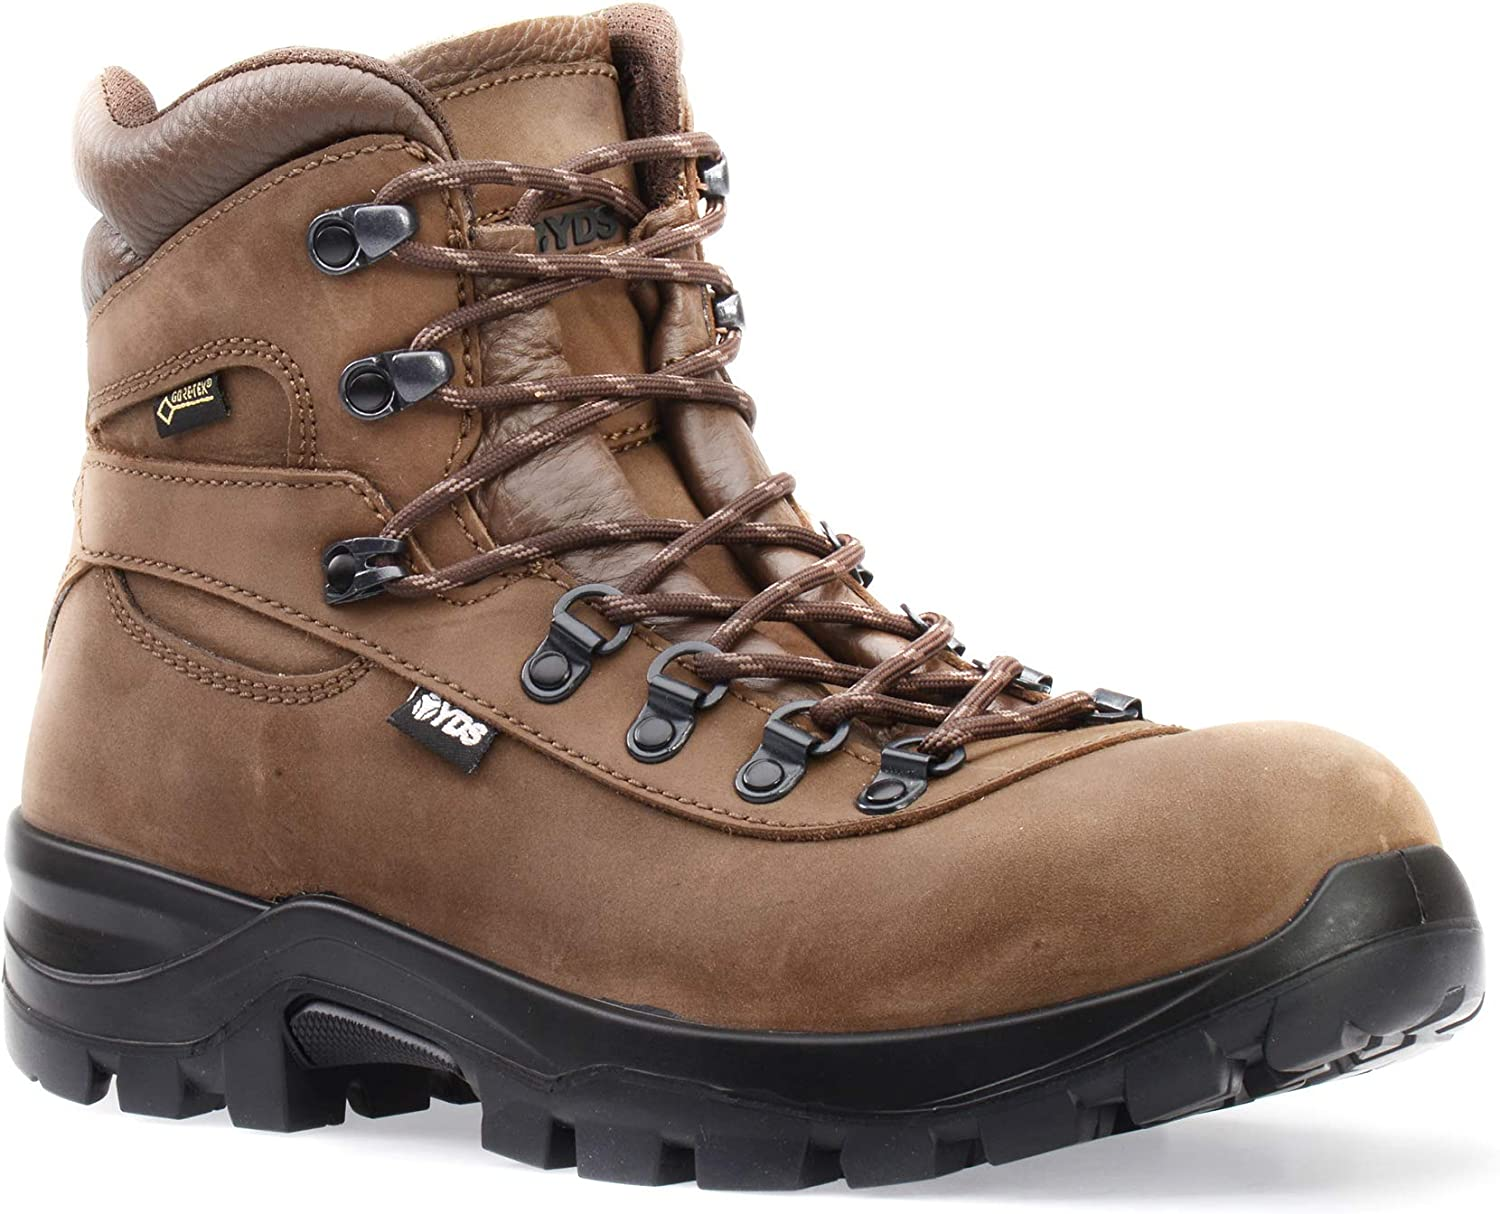 YDS Brisa GTX Mens 100% Waterproof Hiking Grey Boots shoes Gore-TEX MS Sportive Rubber Sole